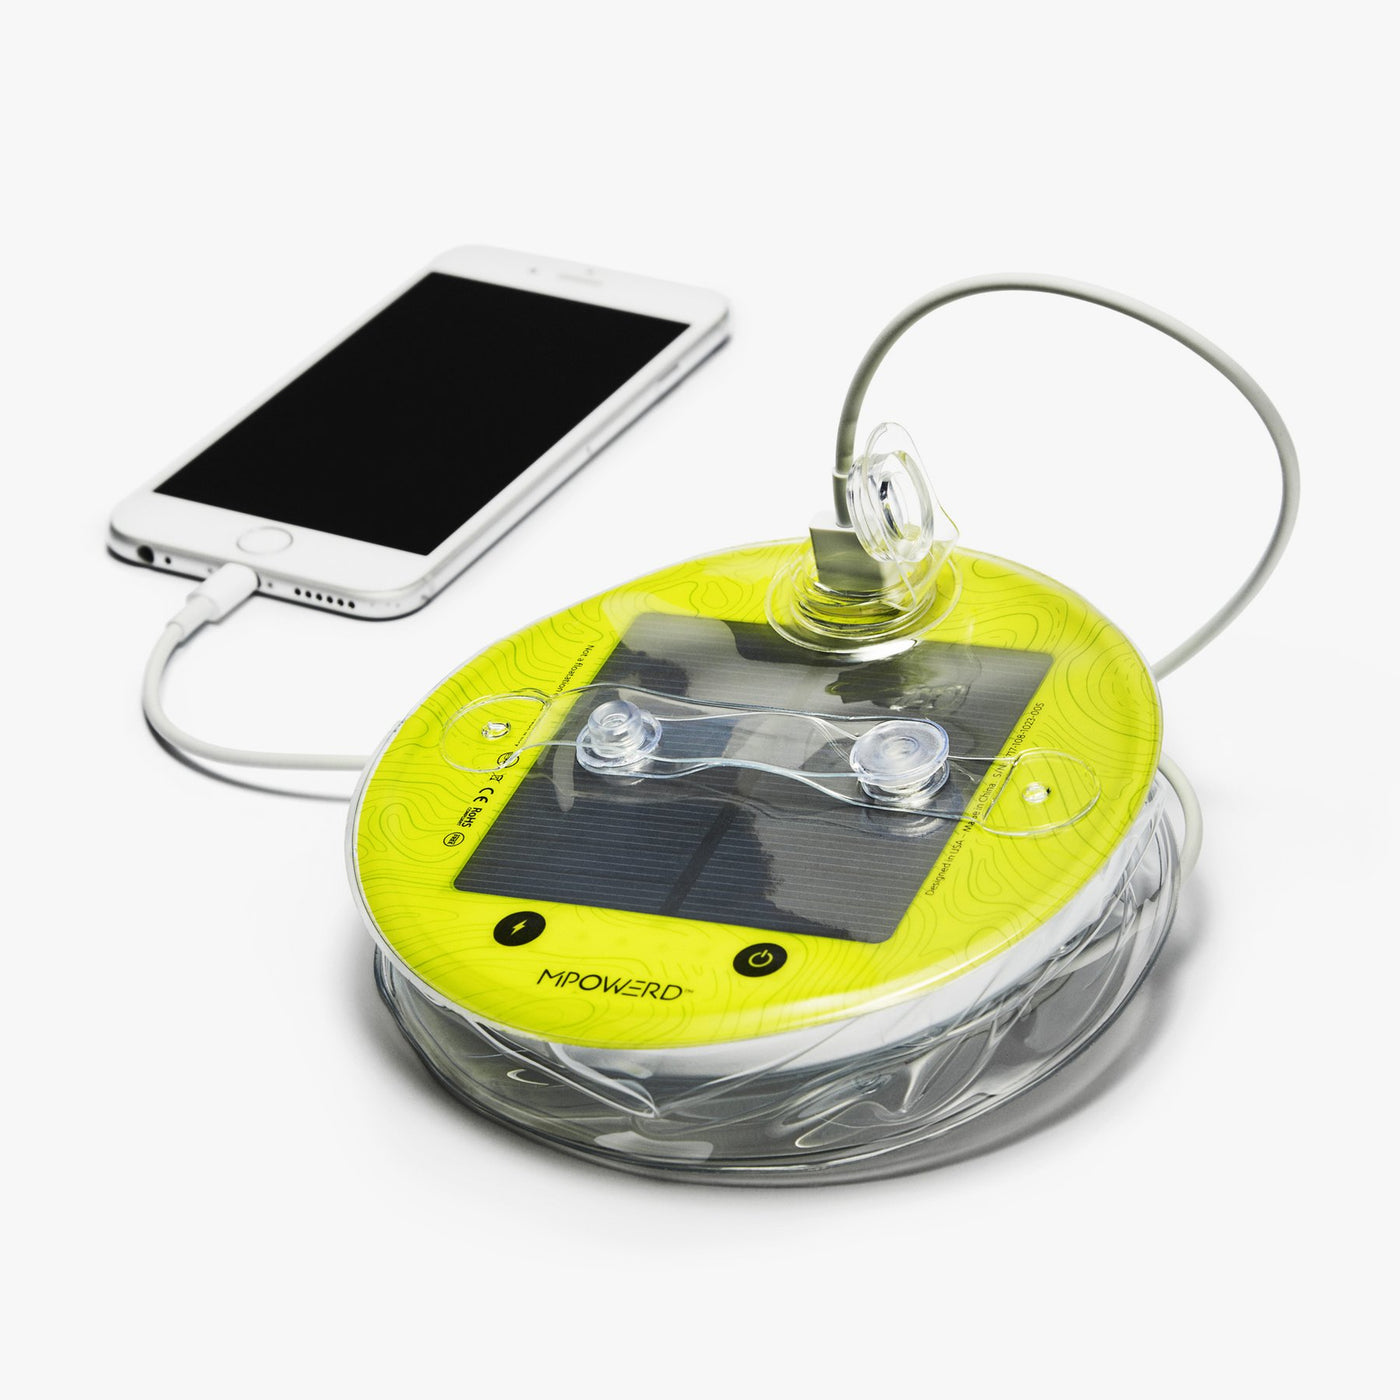 Luci Pro Series - Inflatable Solar Light + Mobile Charger